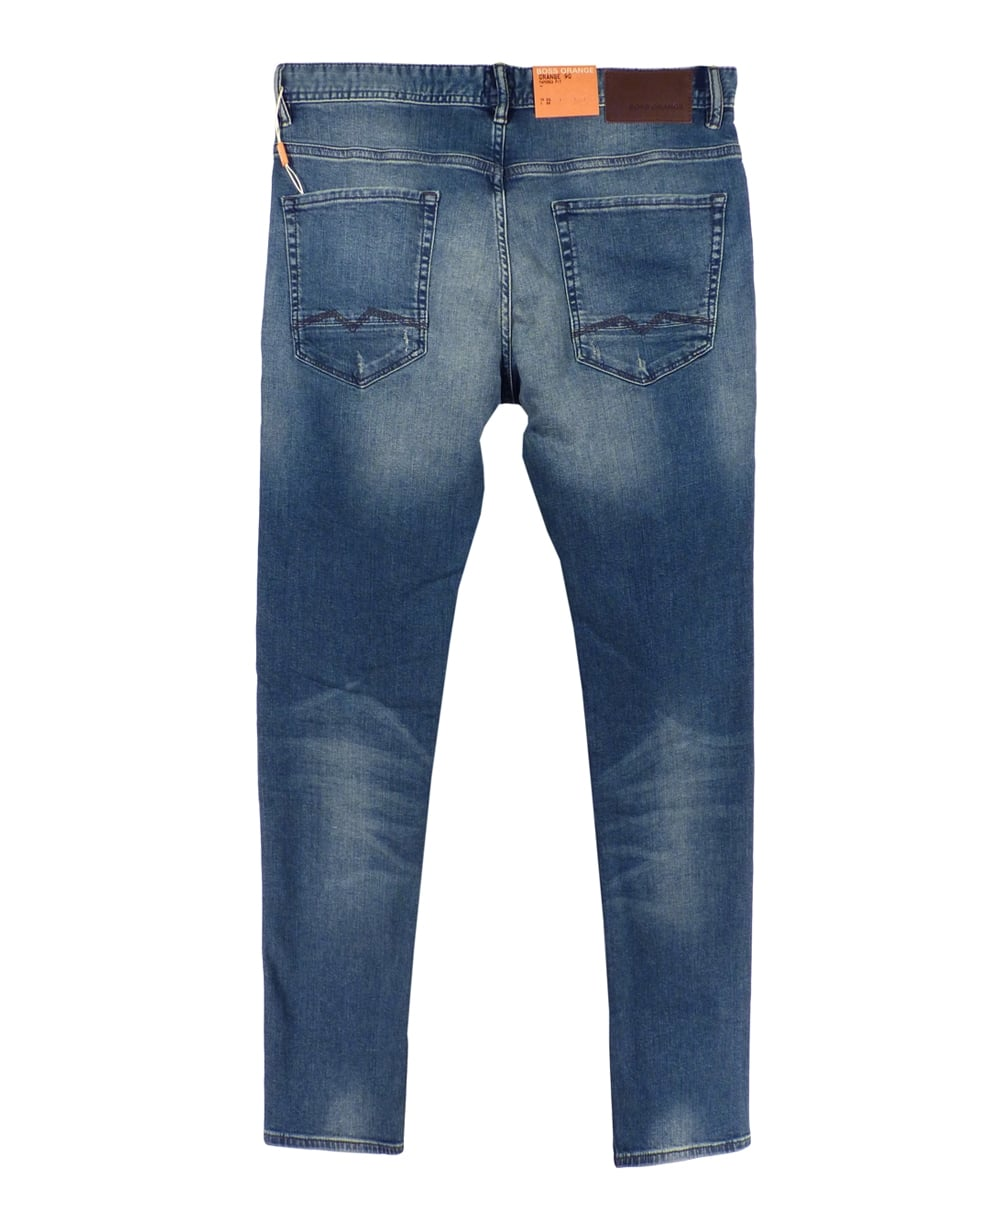 hugo boss 39 orange 90 39 tapered fit jeans in mid blue hugo boss from jonathan trumbull uk. Black Bedroom Furniture Sets. Home Design Ideas